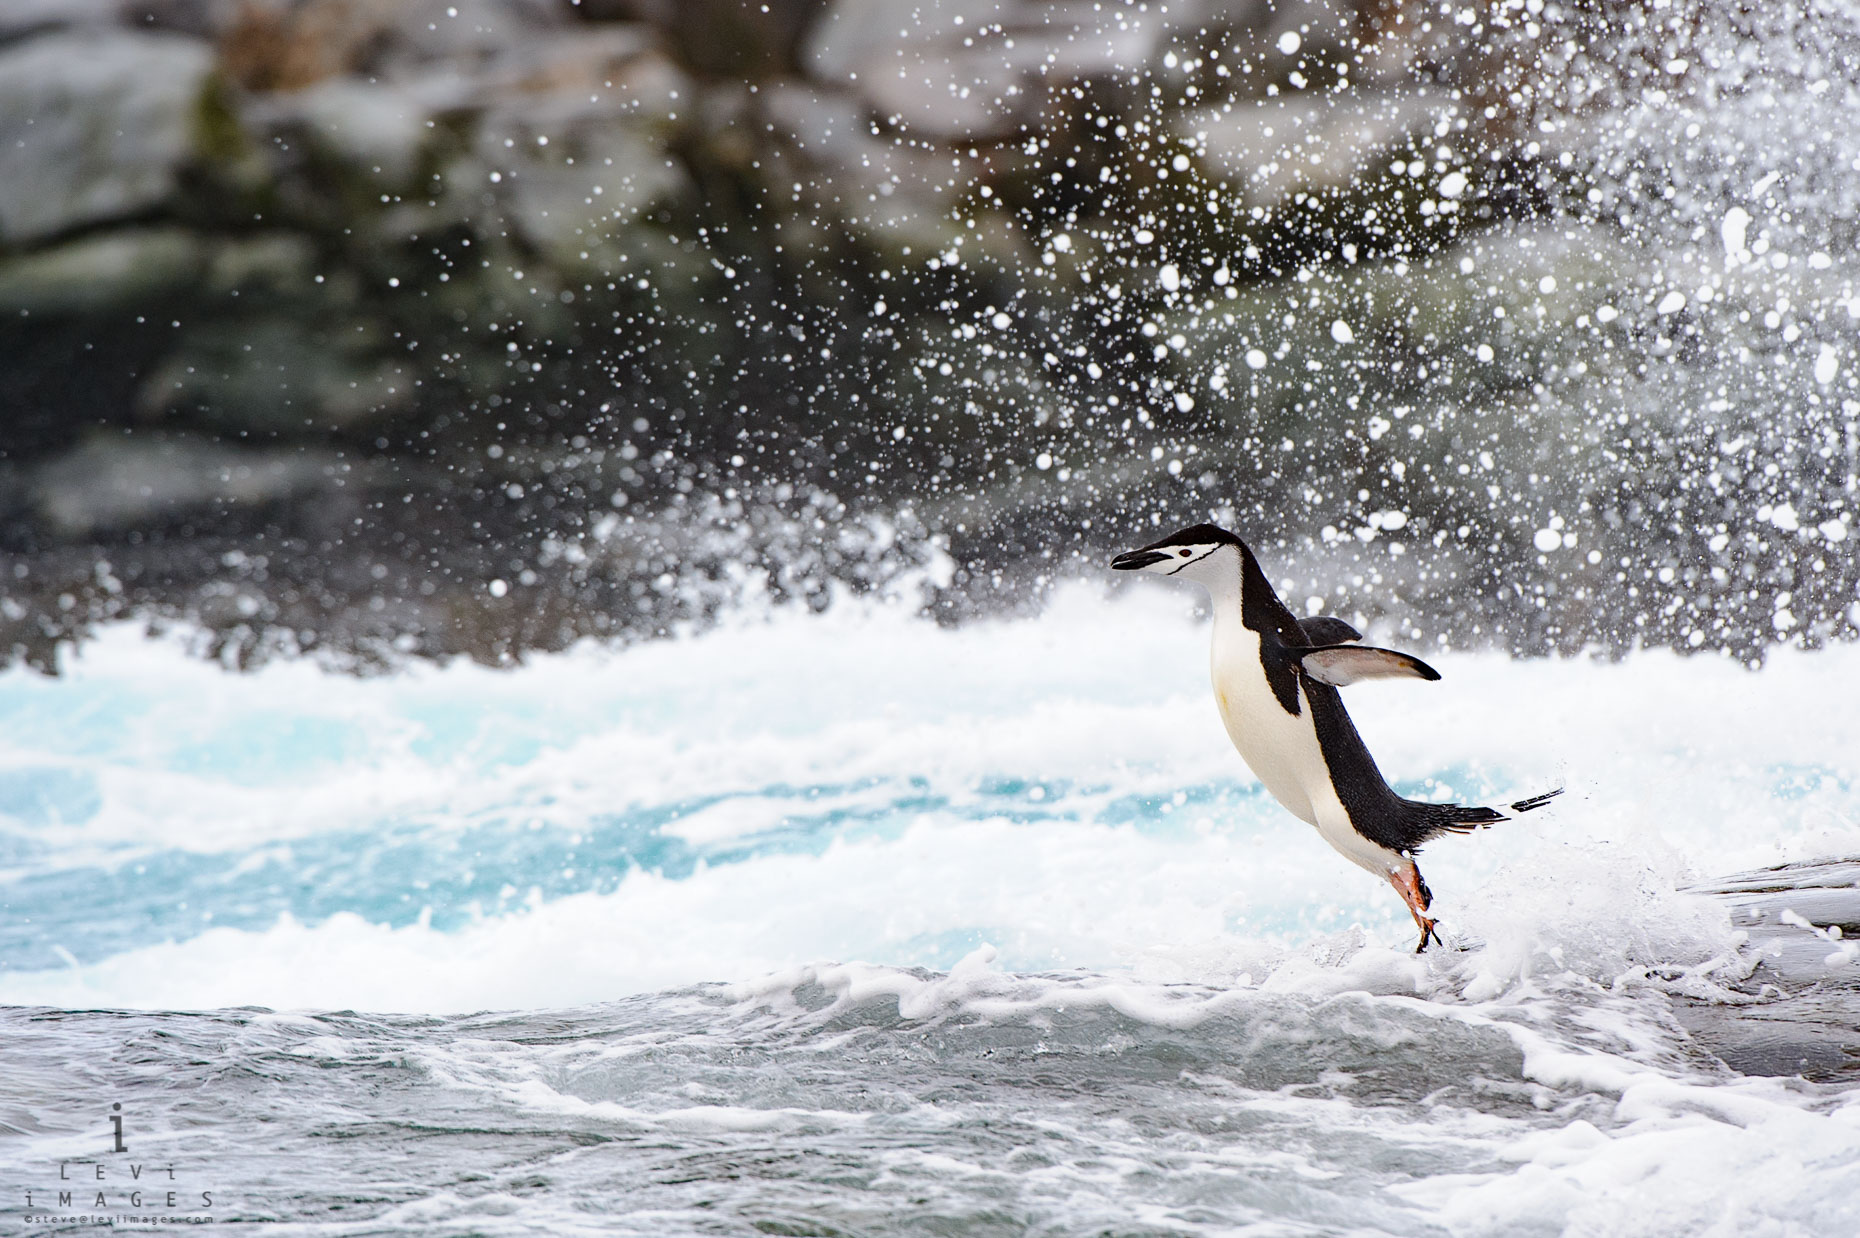 Chinstrap penguin (Pygoscelis antarcticus) jumping in spray. Antarctica